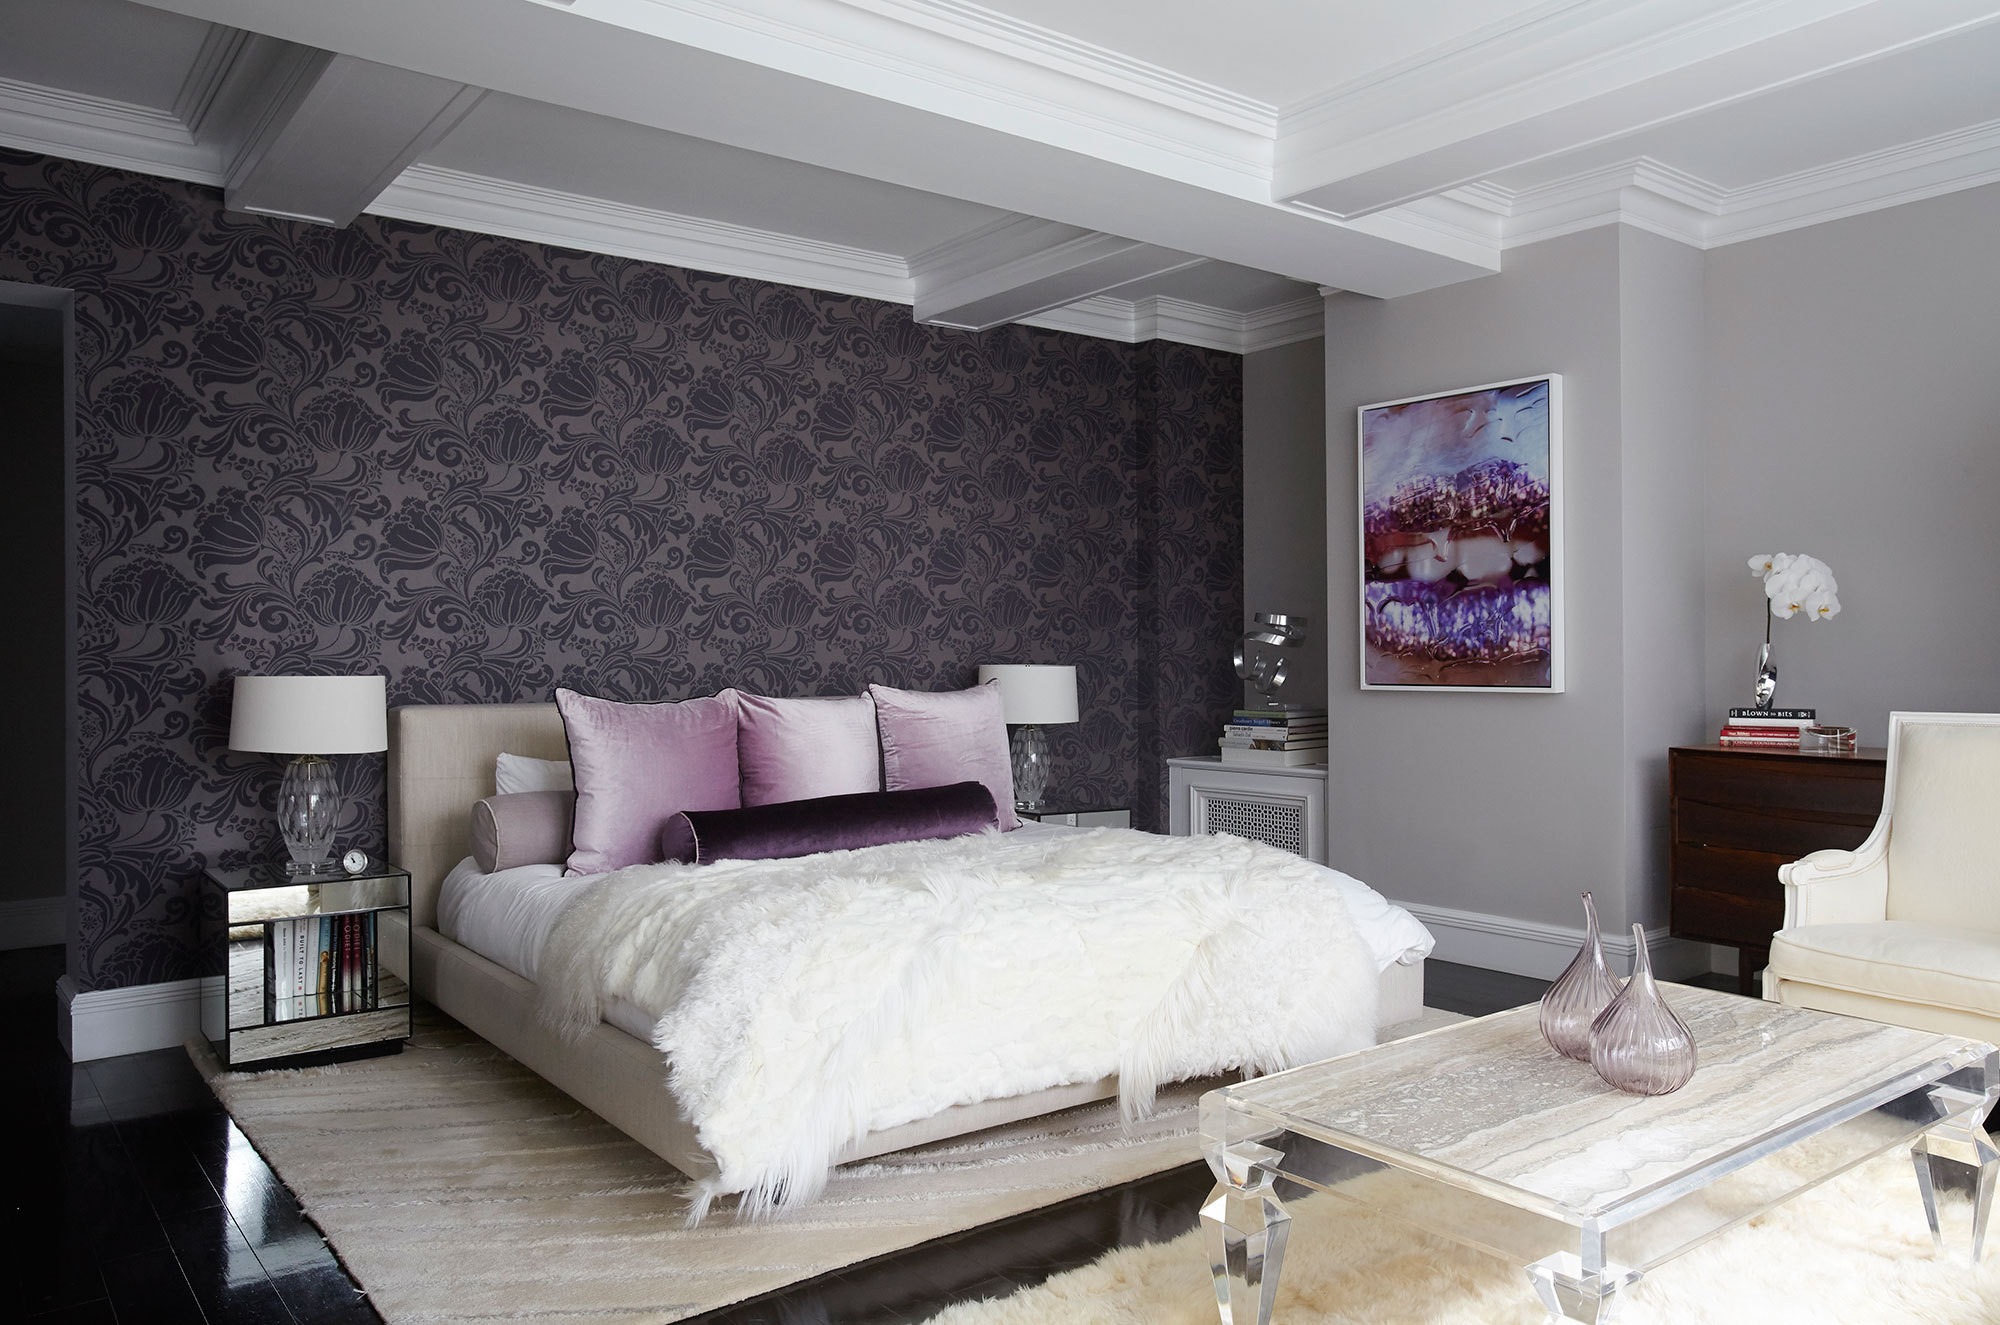 Soft textures in the master bedroom offer a lush respite from long days in the city.